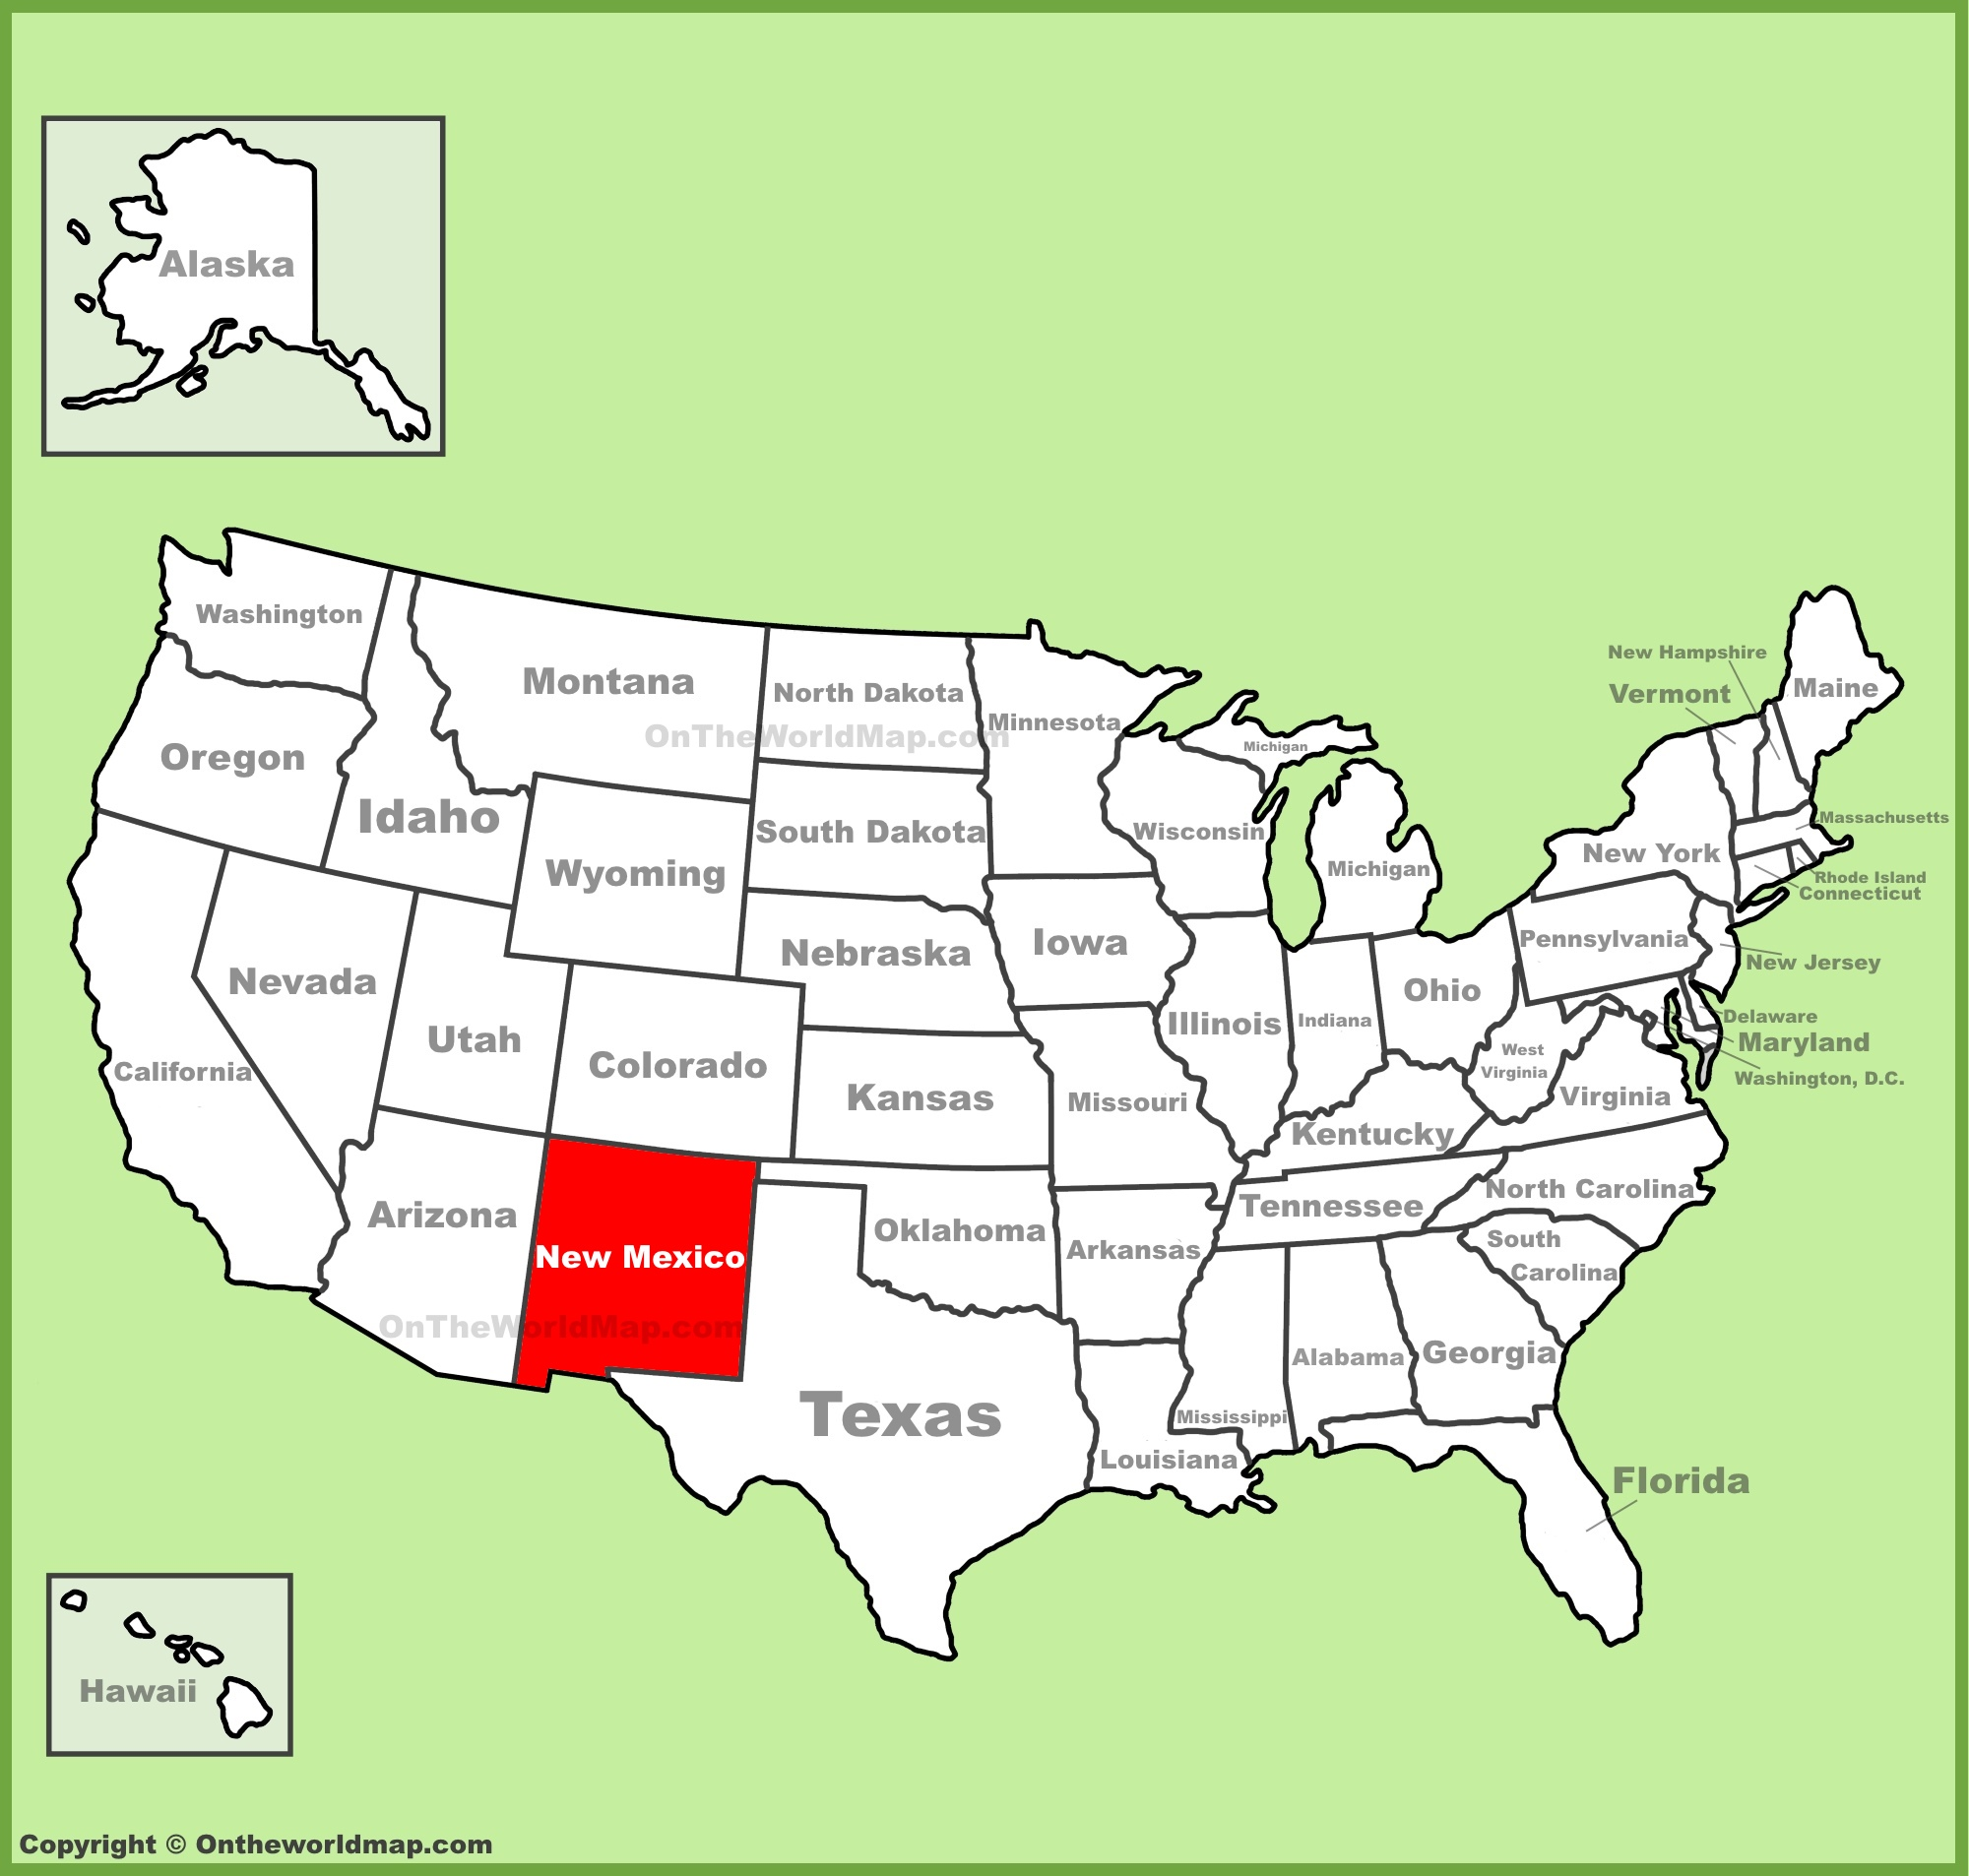 New Mexico Location On The US Map - New mexico on us map